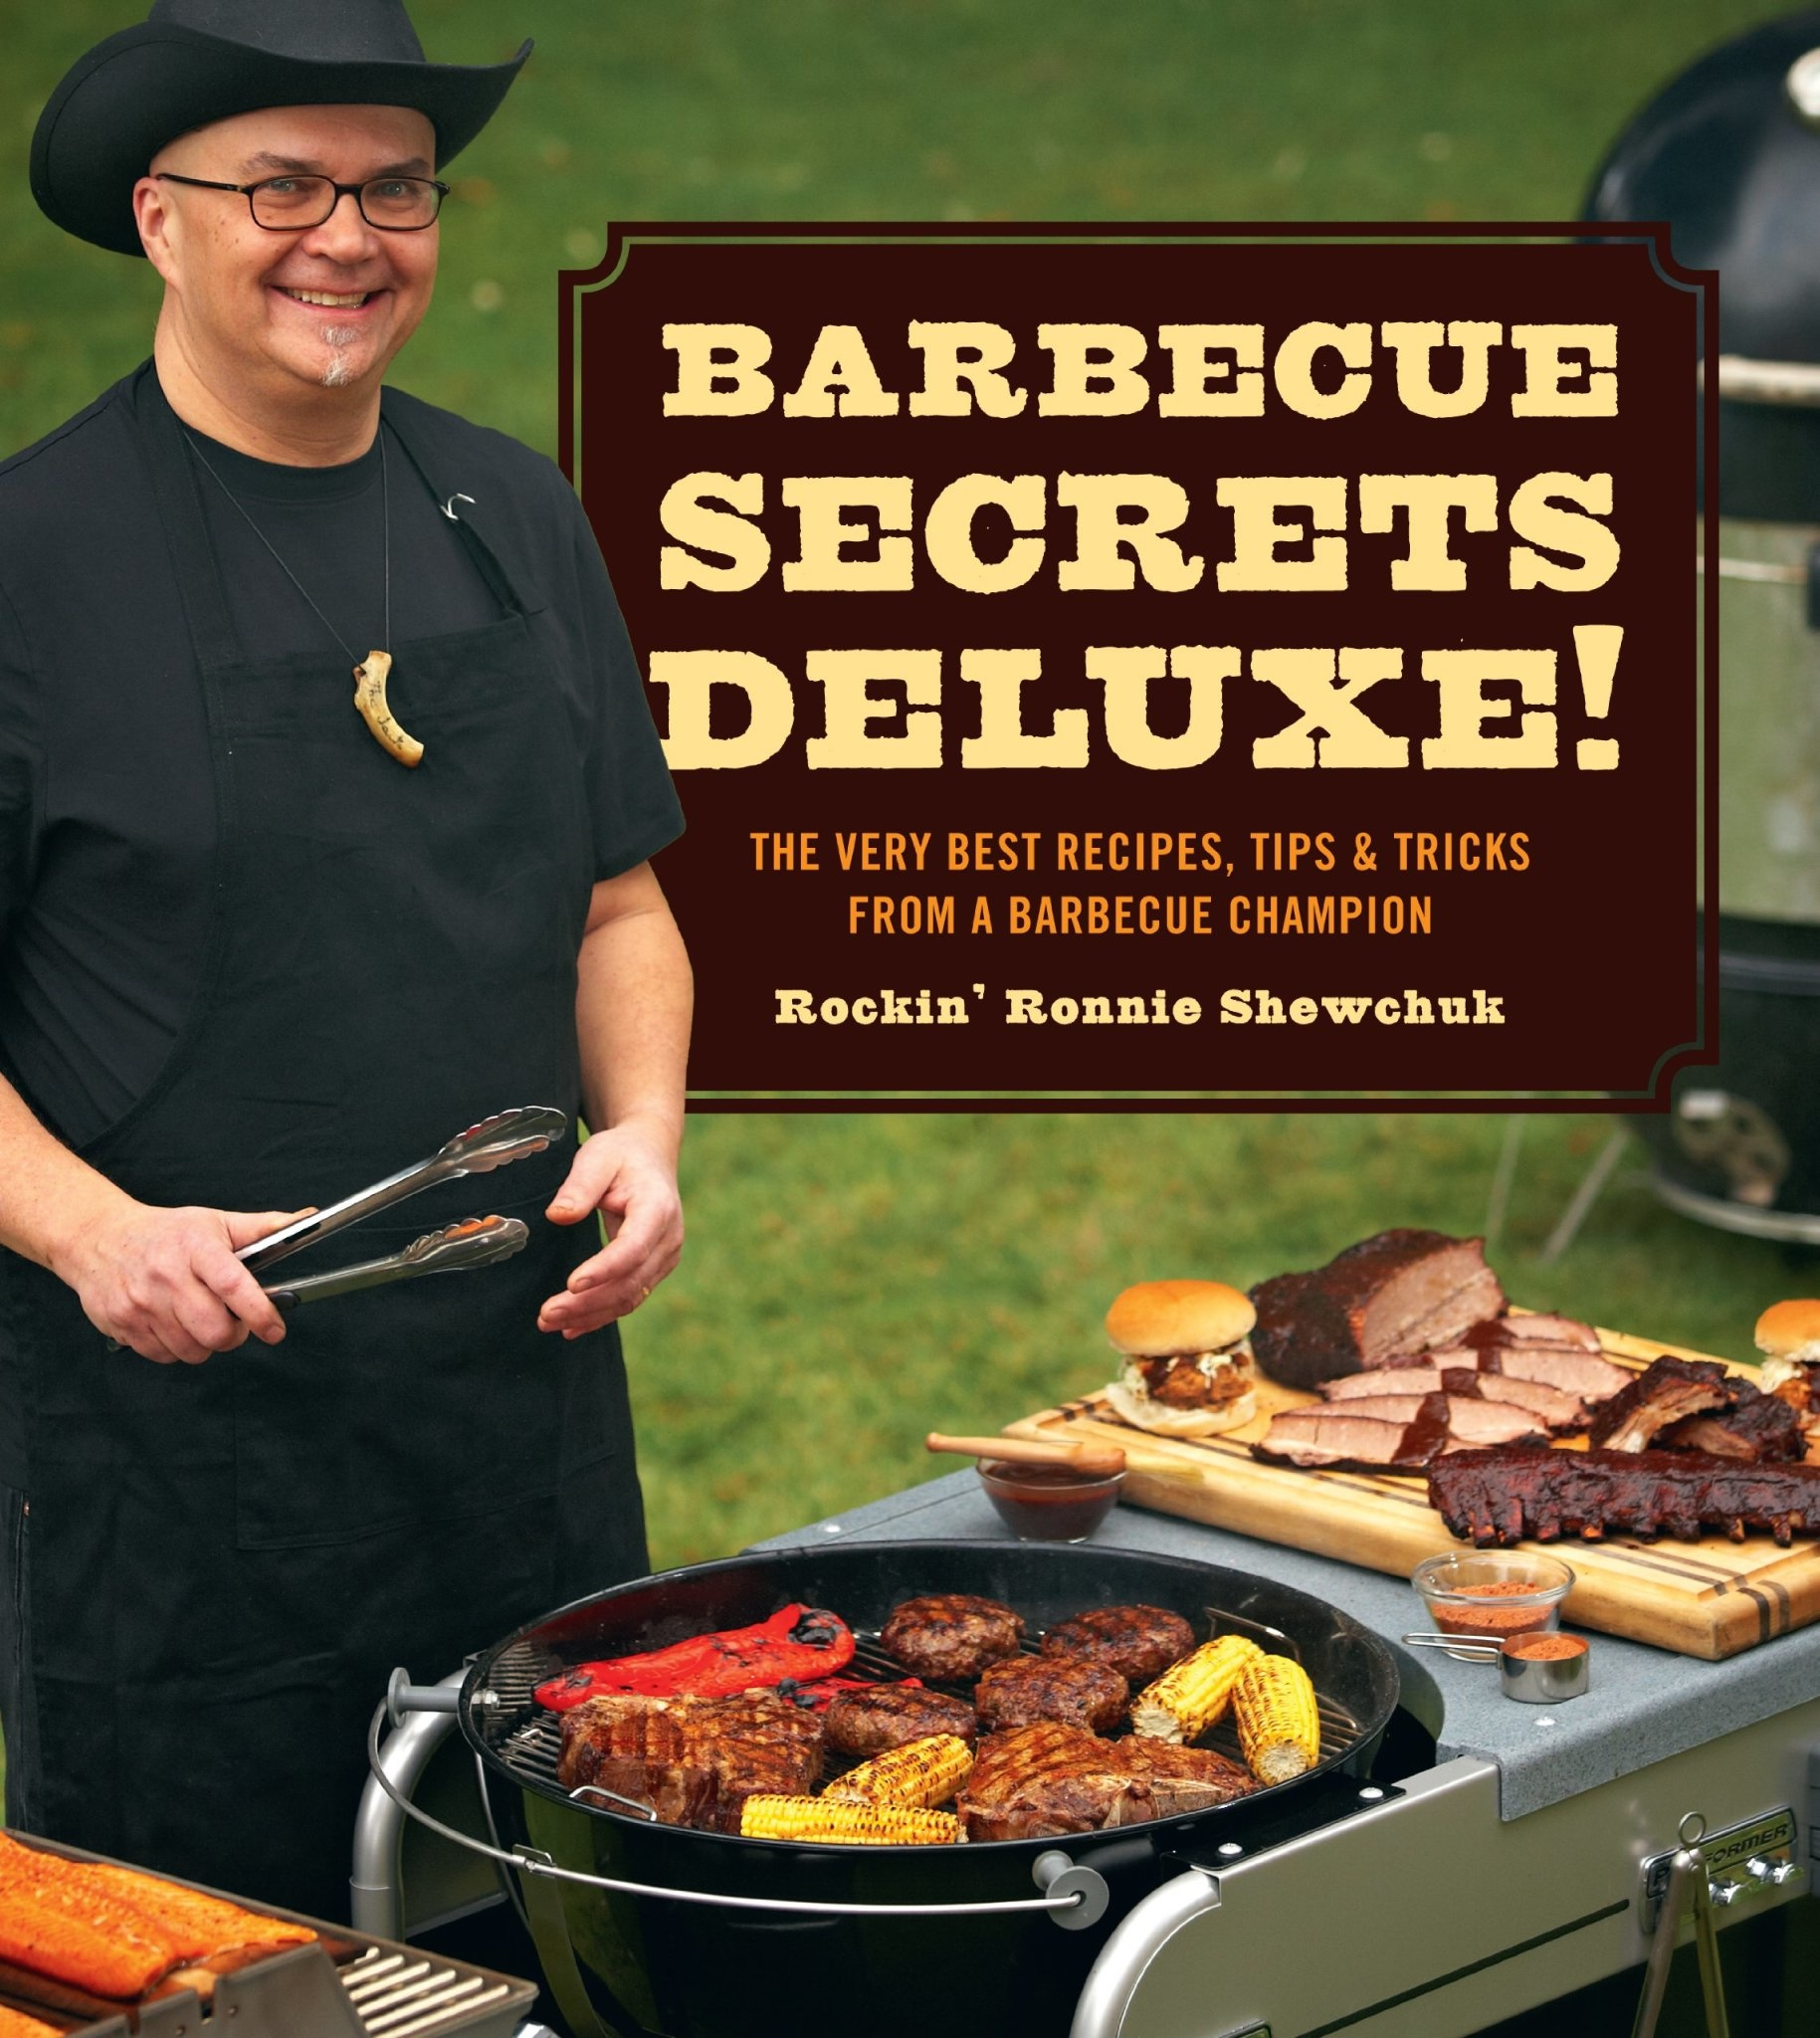 Barbecue Secrets Deluxe: The Very Best Recipes, Tips, and Tricks from a Barbecue Champion